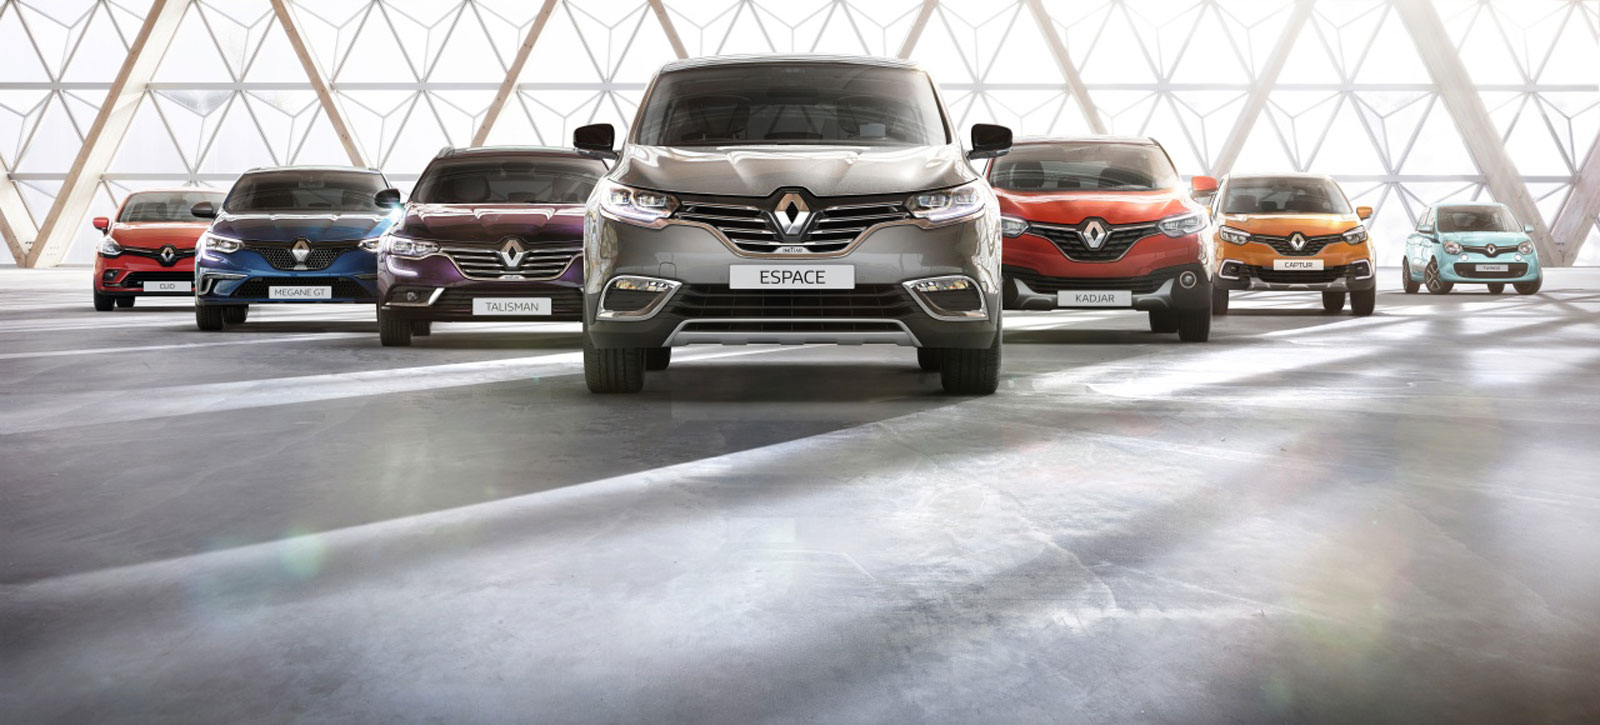 Read more Renault